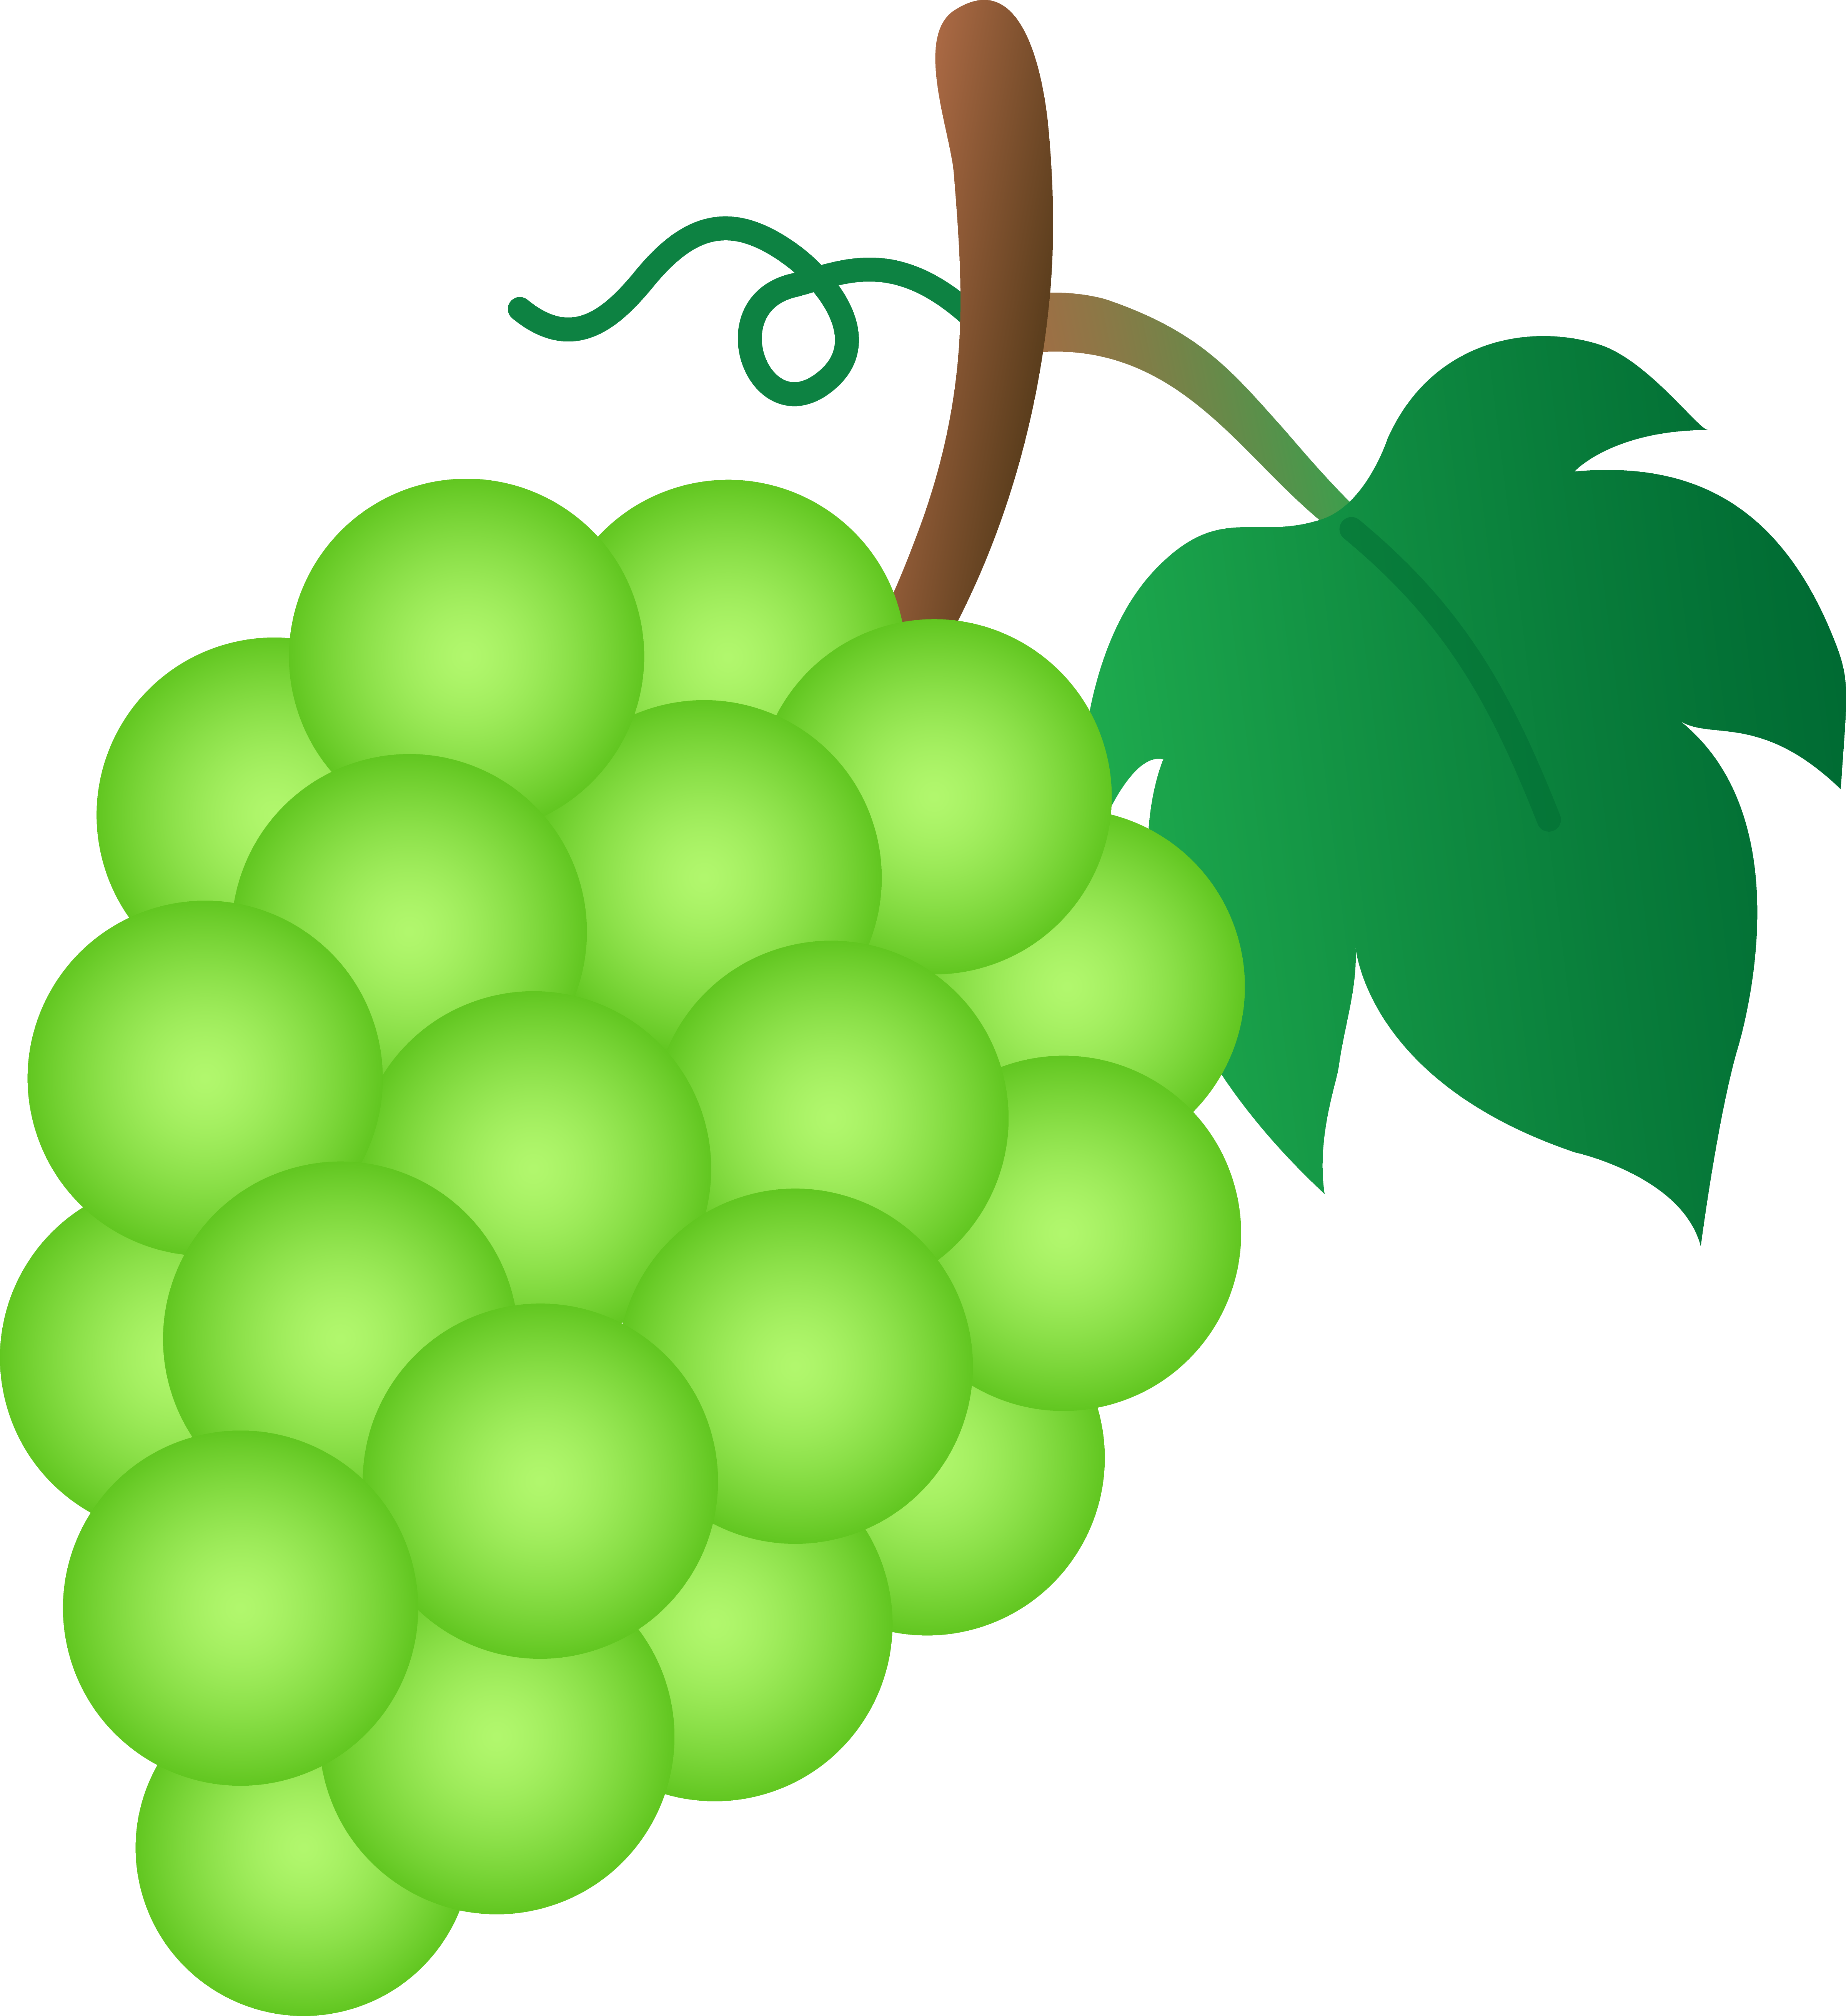 Grape clipart illustration. Free art grapes download